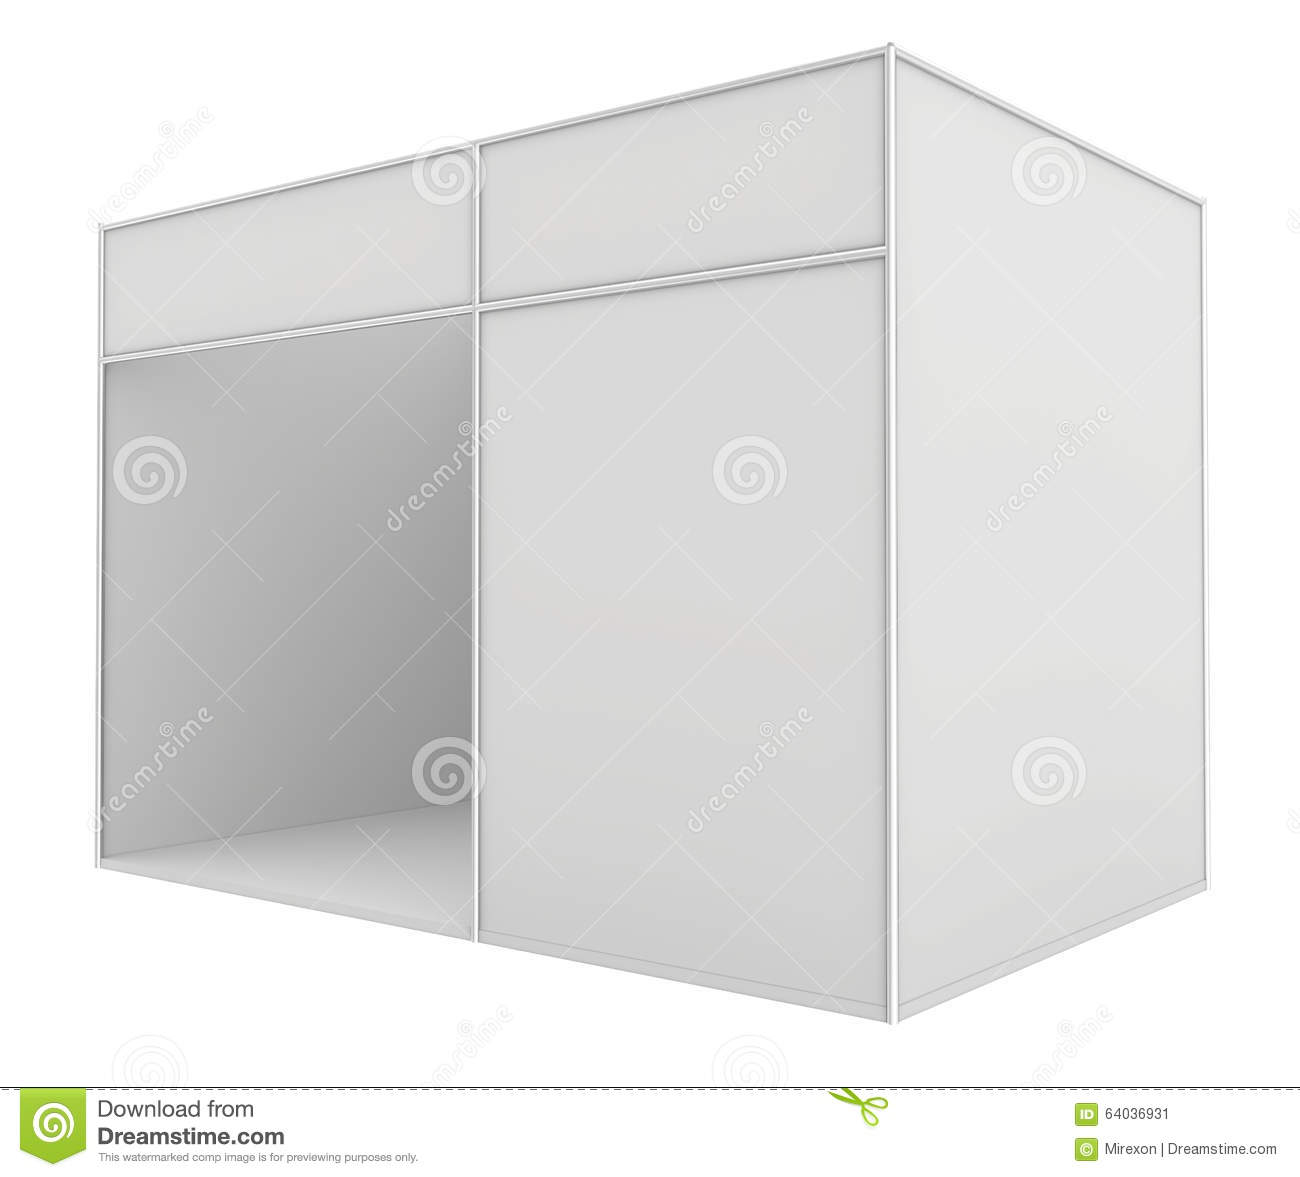 D Exhibition Stand Free Download : Blank exhibition stand. 3d render isolated on illustration 64036931